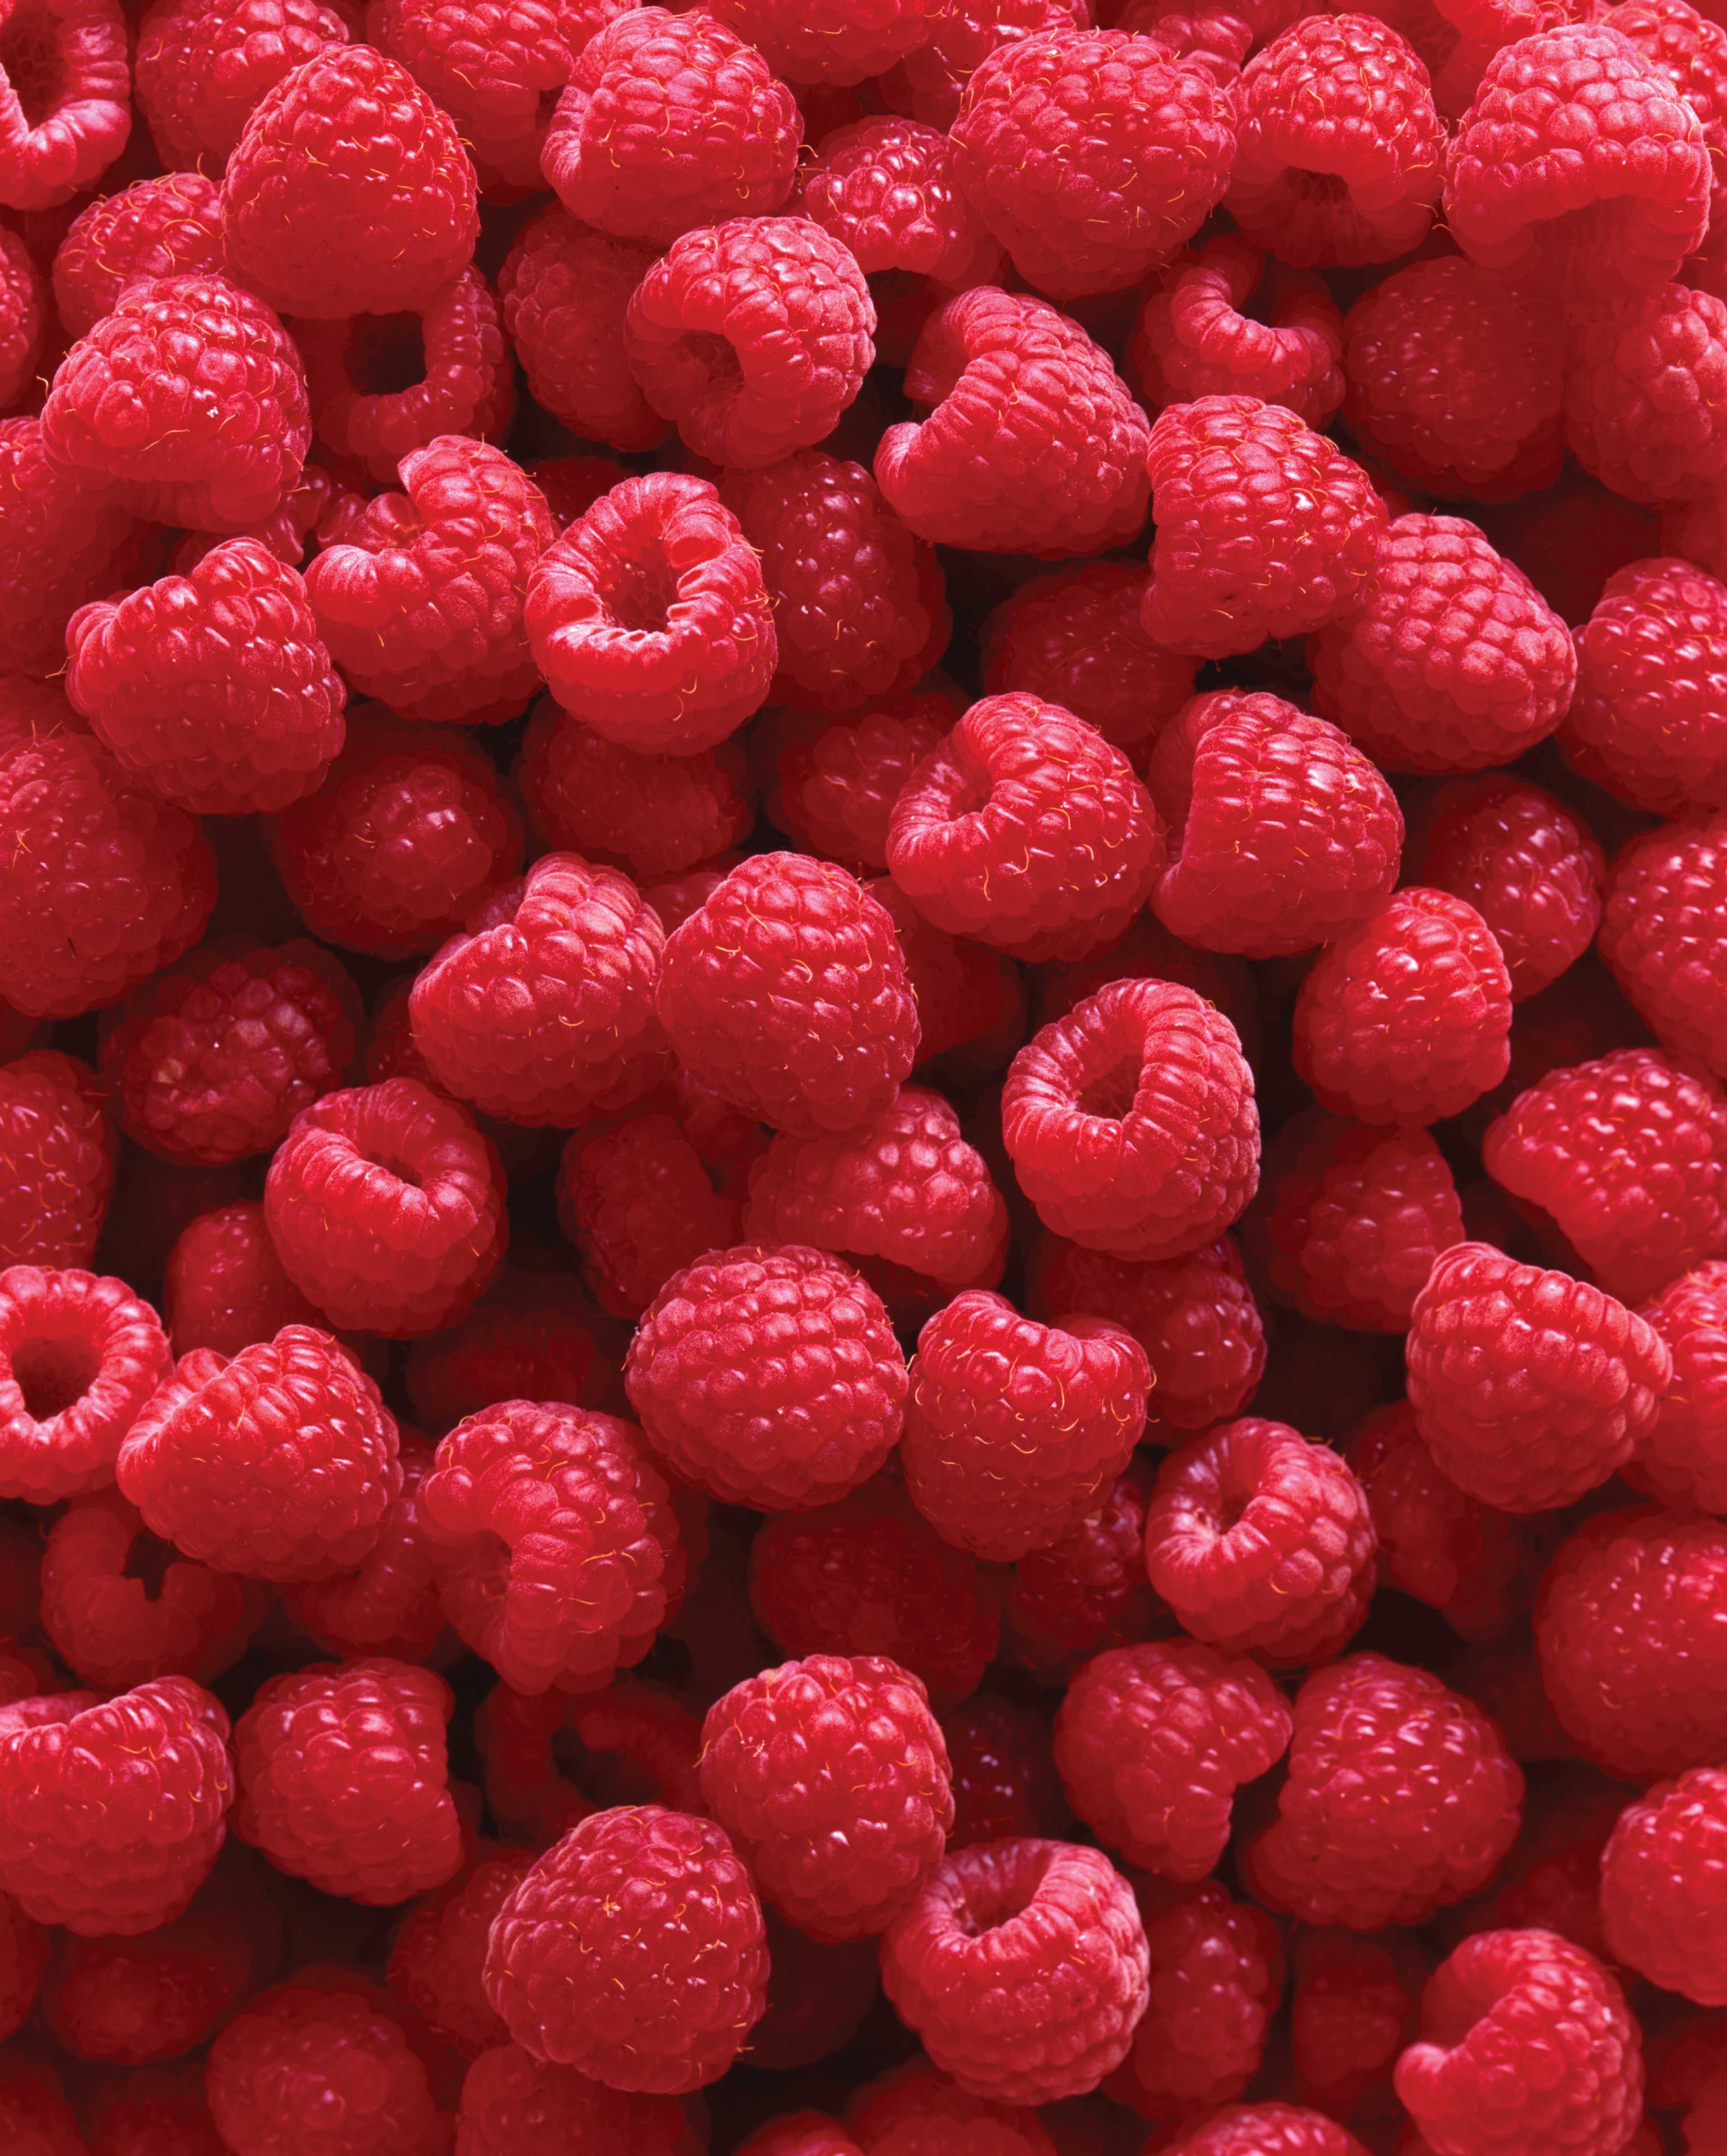 Long-time love of luscious berries becomes a family project in growing raspberries.